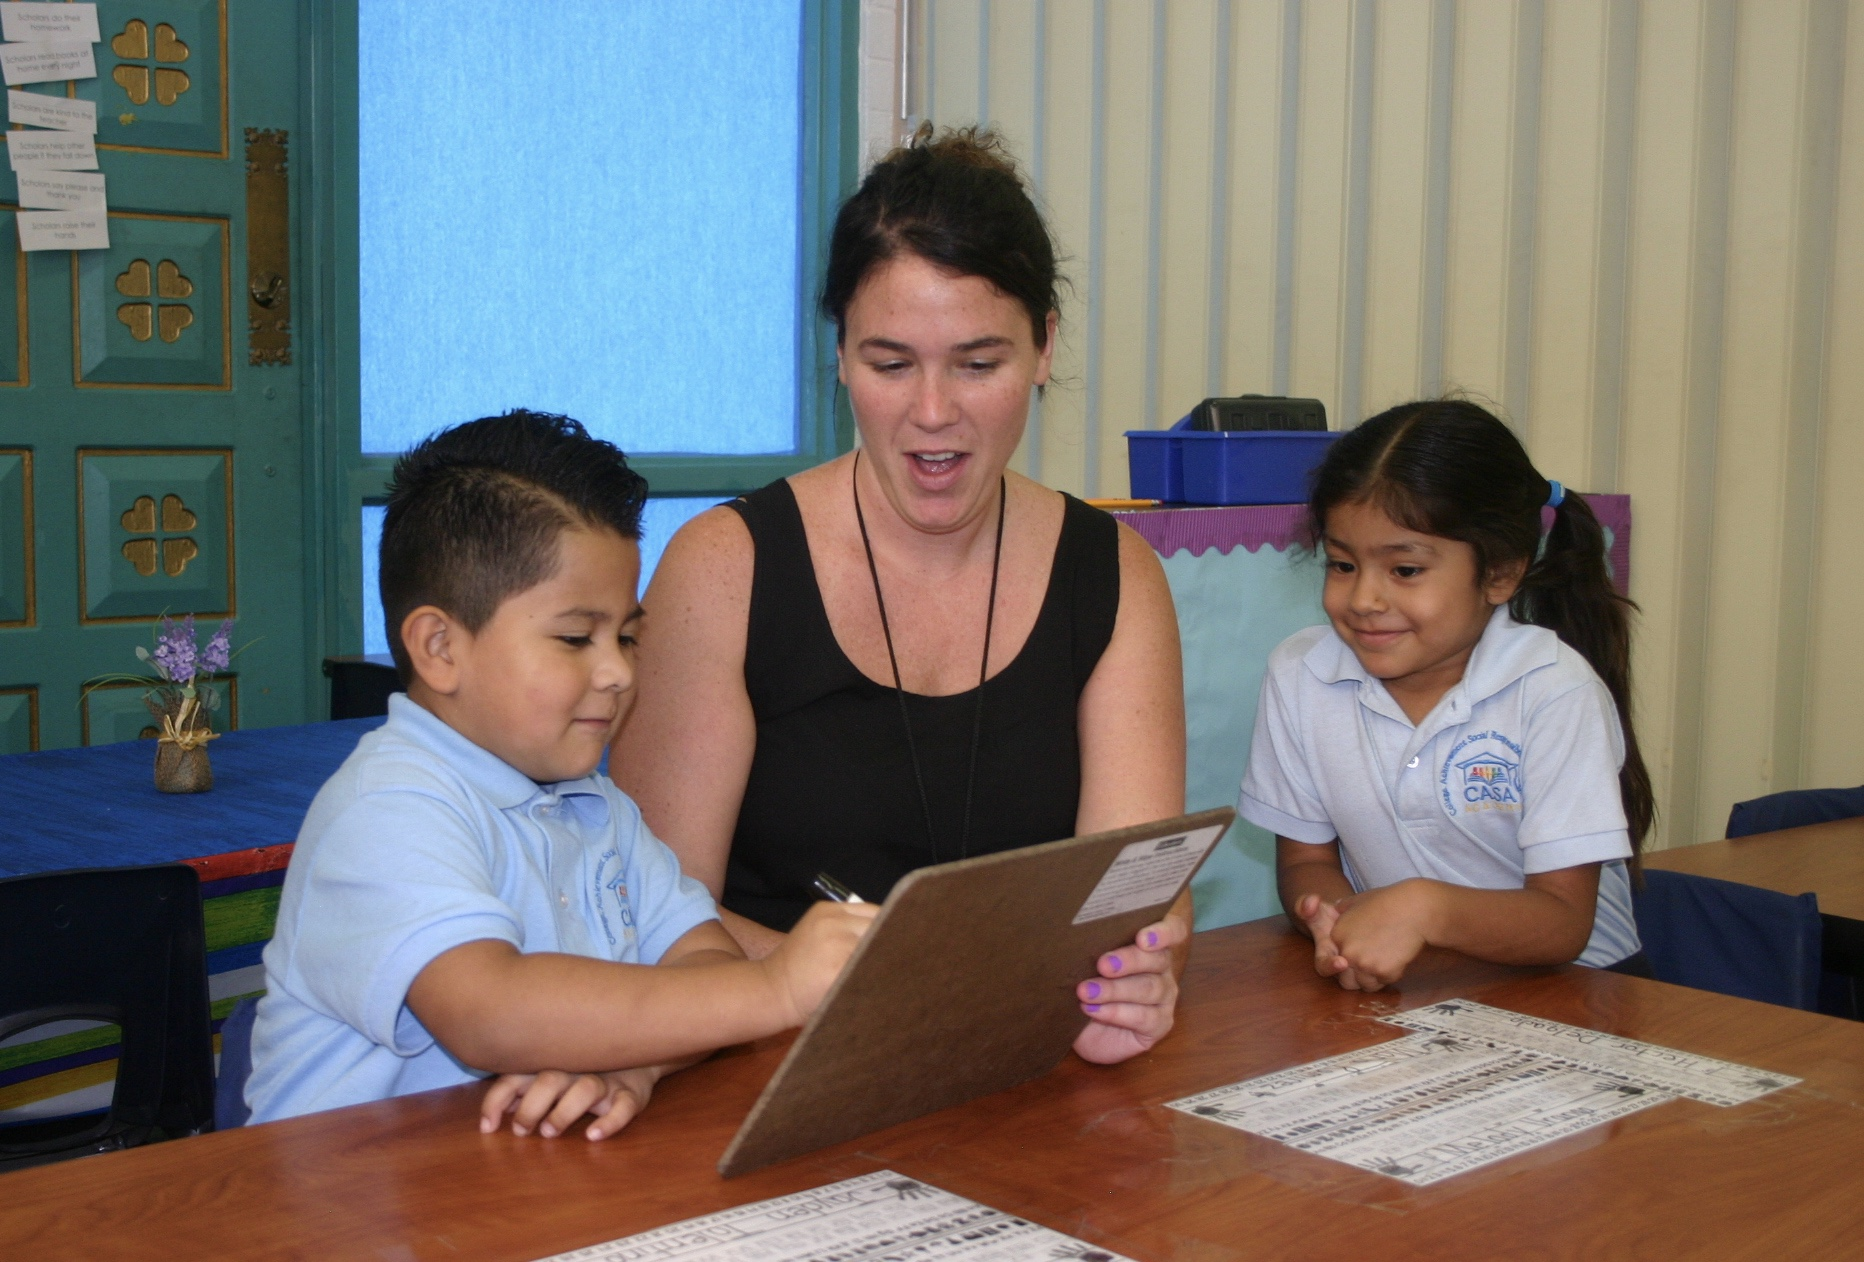 Amanda Diaz, Kindergarten Teacher